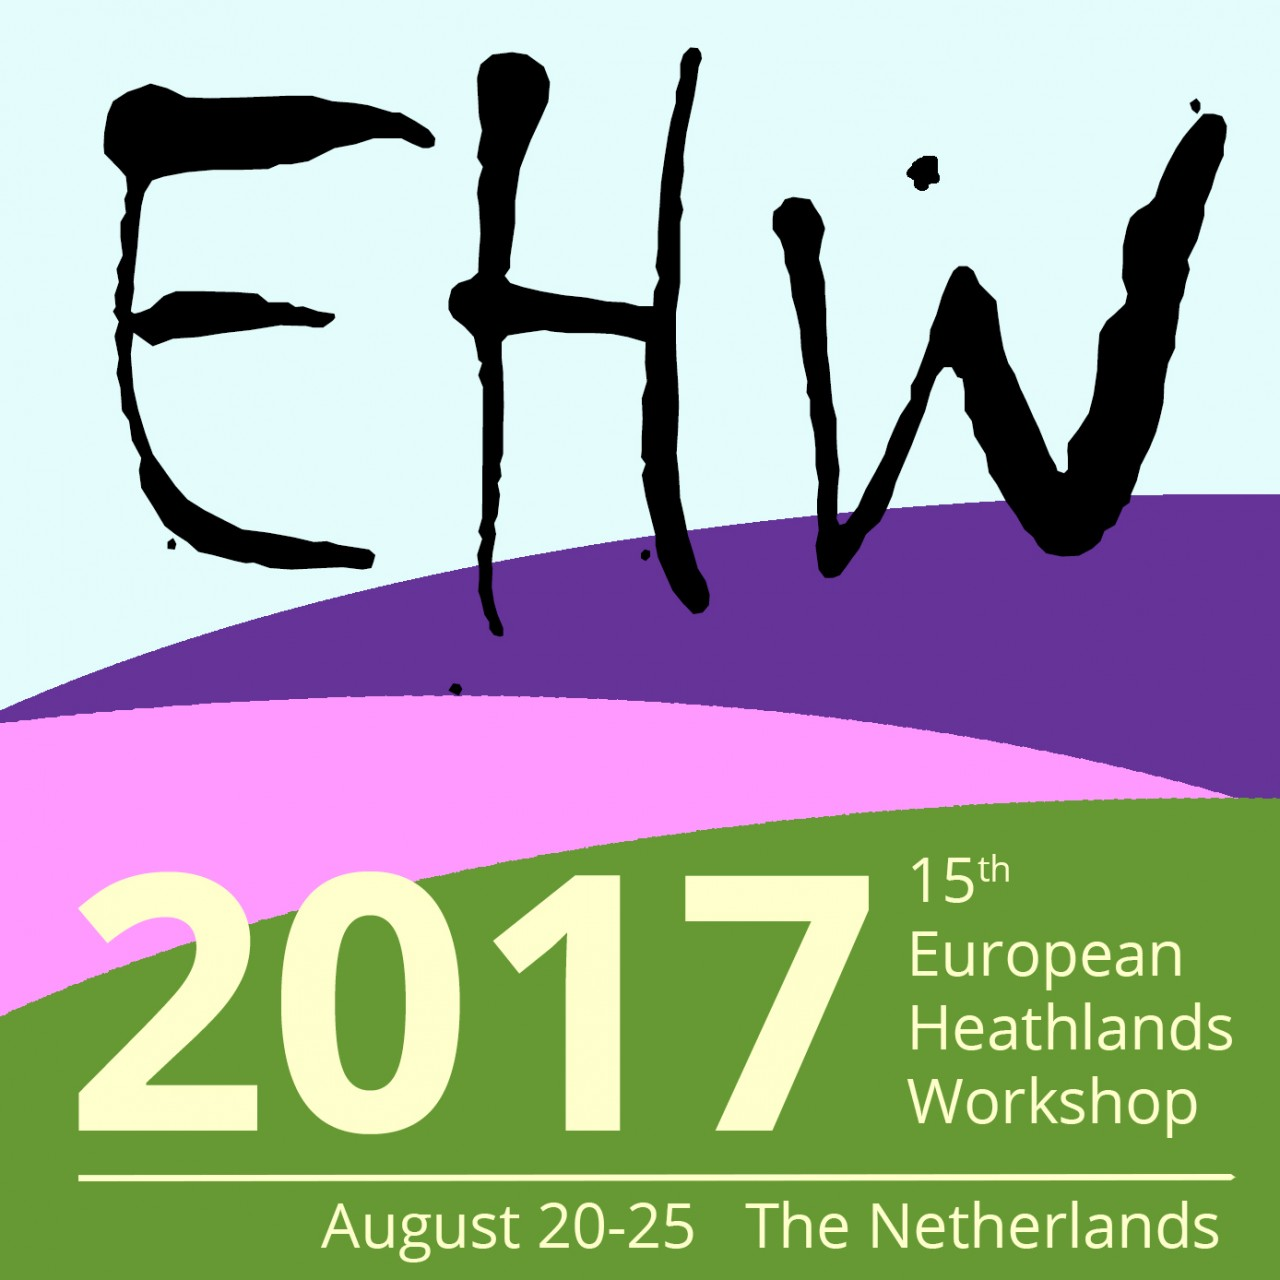 subjects for presentations a new behavioral assay revealed that  15th european heathlands workshop 2017 presentation submissions oral presentations preferrably comply to one of the topics